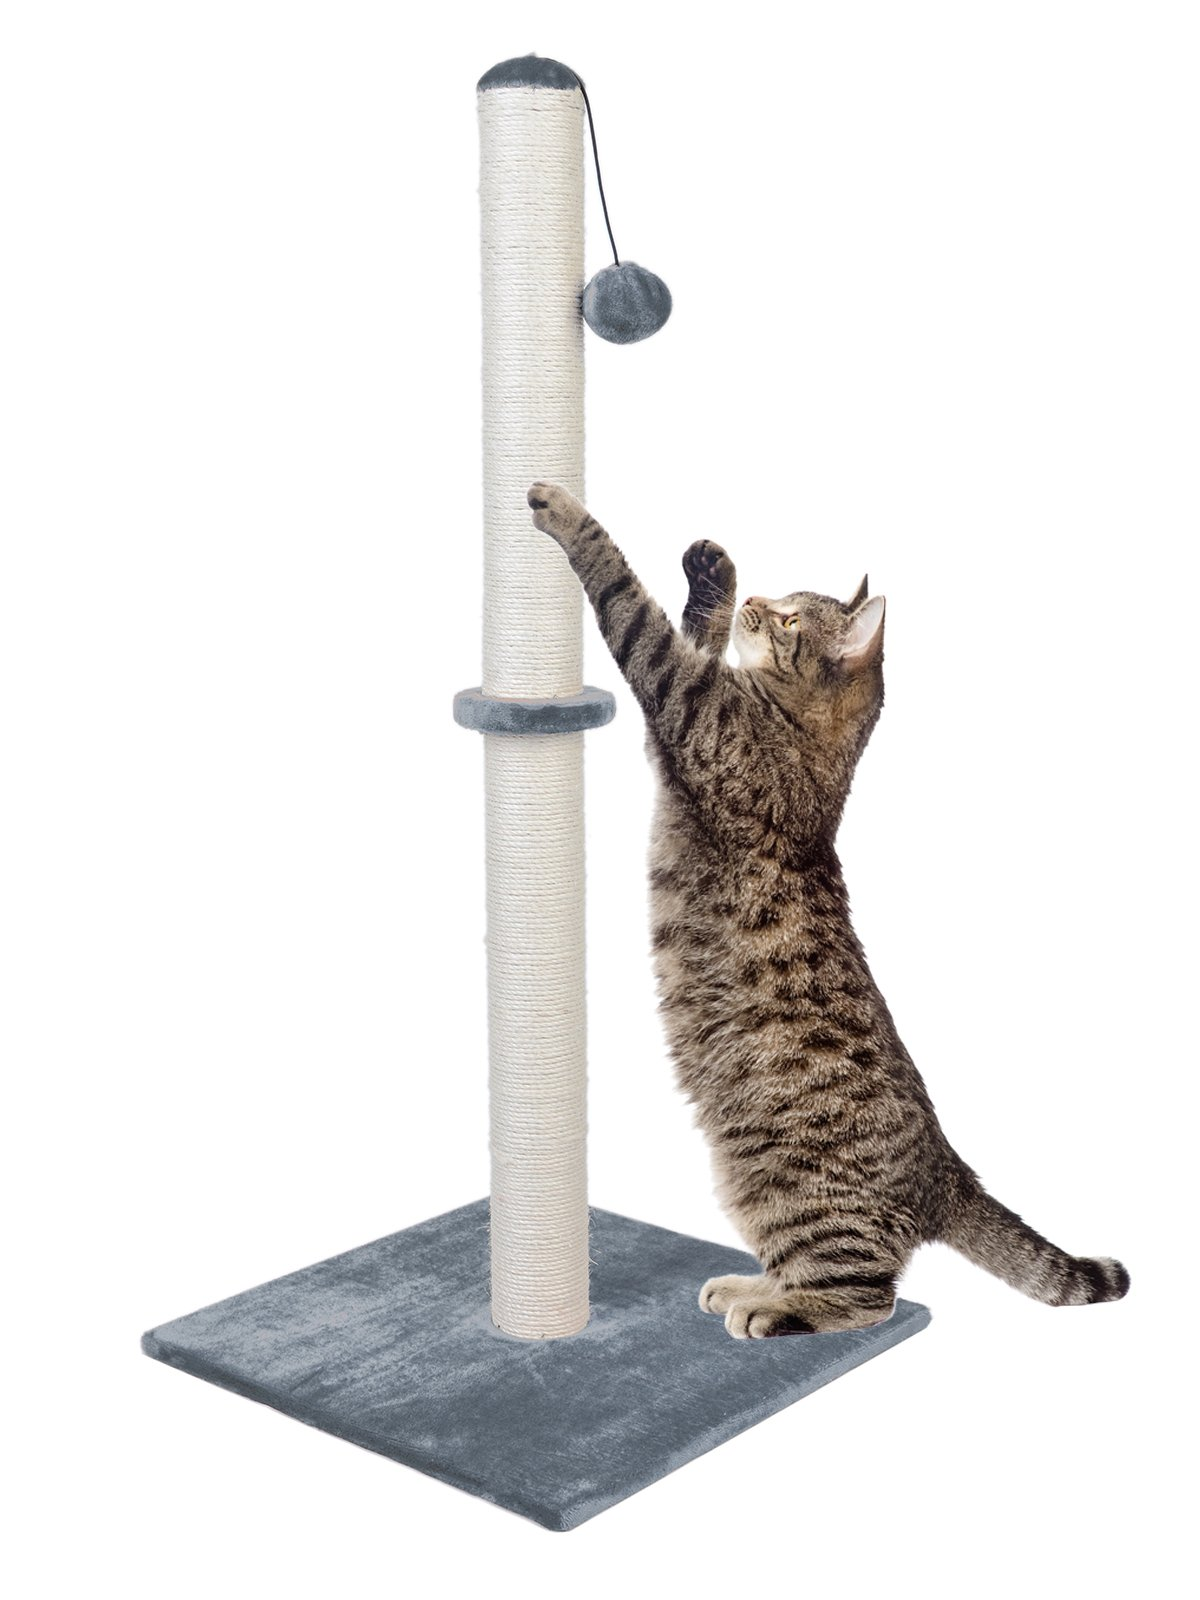 Dimaka 37'' Tall Ultimate Cat Scratching Post, Claw Scratcher with Sisal Rope and Covered with Soft Smooth Plush, Vertical Scratch [Full Strectch], Modern Stable Design 37 Inches Height (Light Grey) by Dimaka